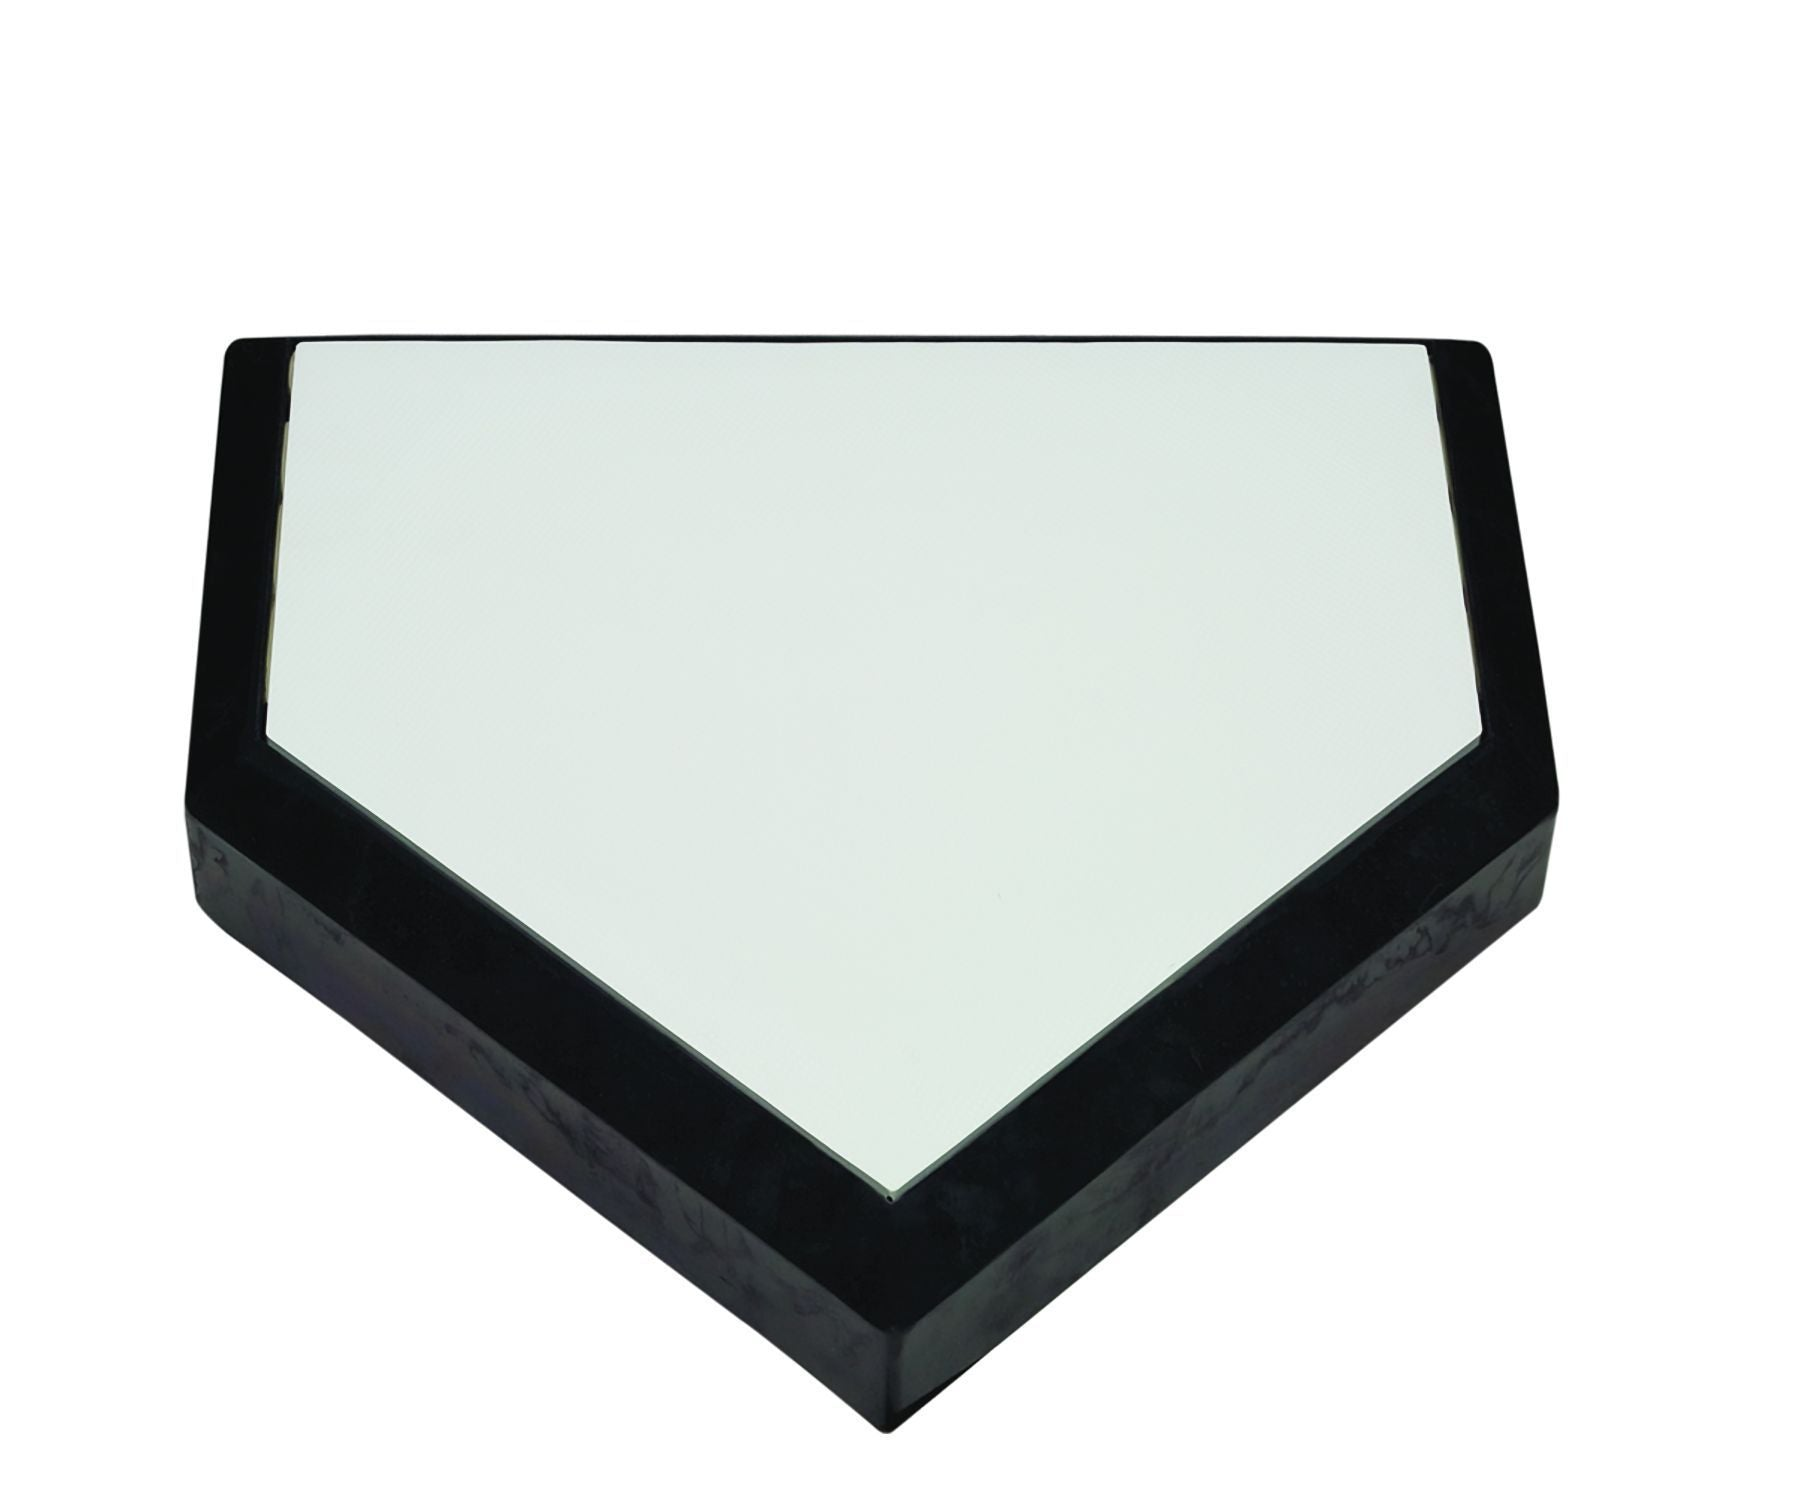 SCHUTT Hollywood Bury All Home Plate